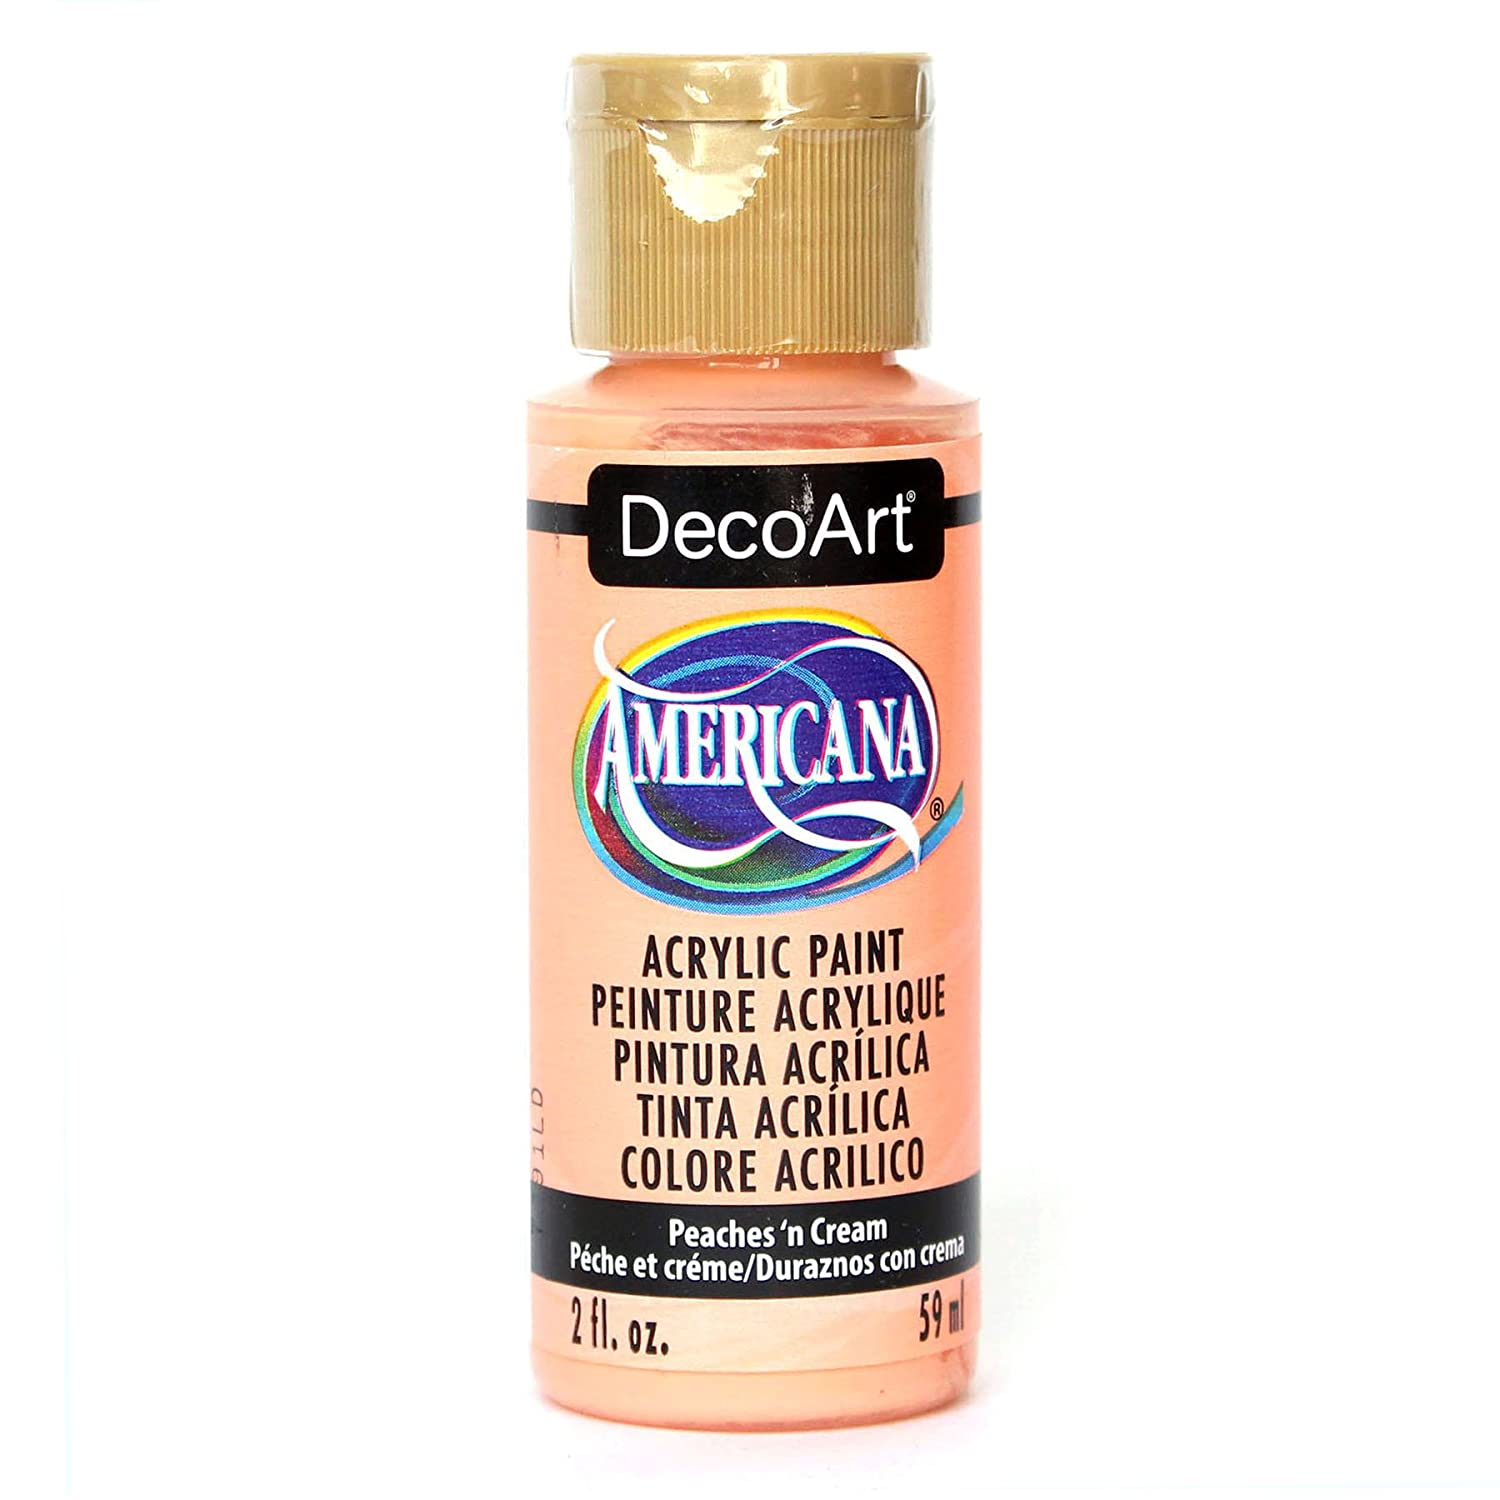 Deco Art Americana 2 oz Acrylic Multi-Purpose Paint, Peach DecoArt DAO23-3